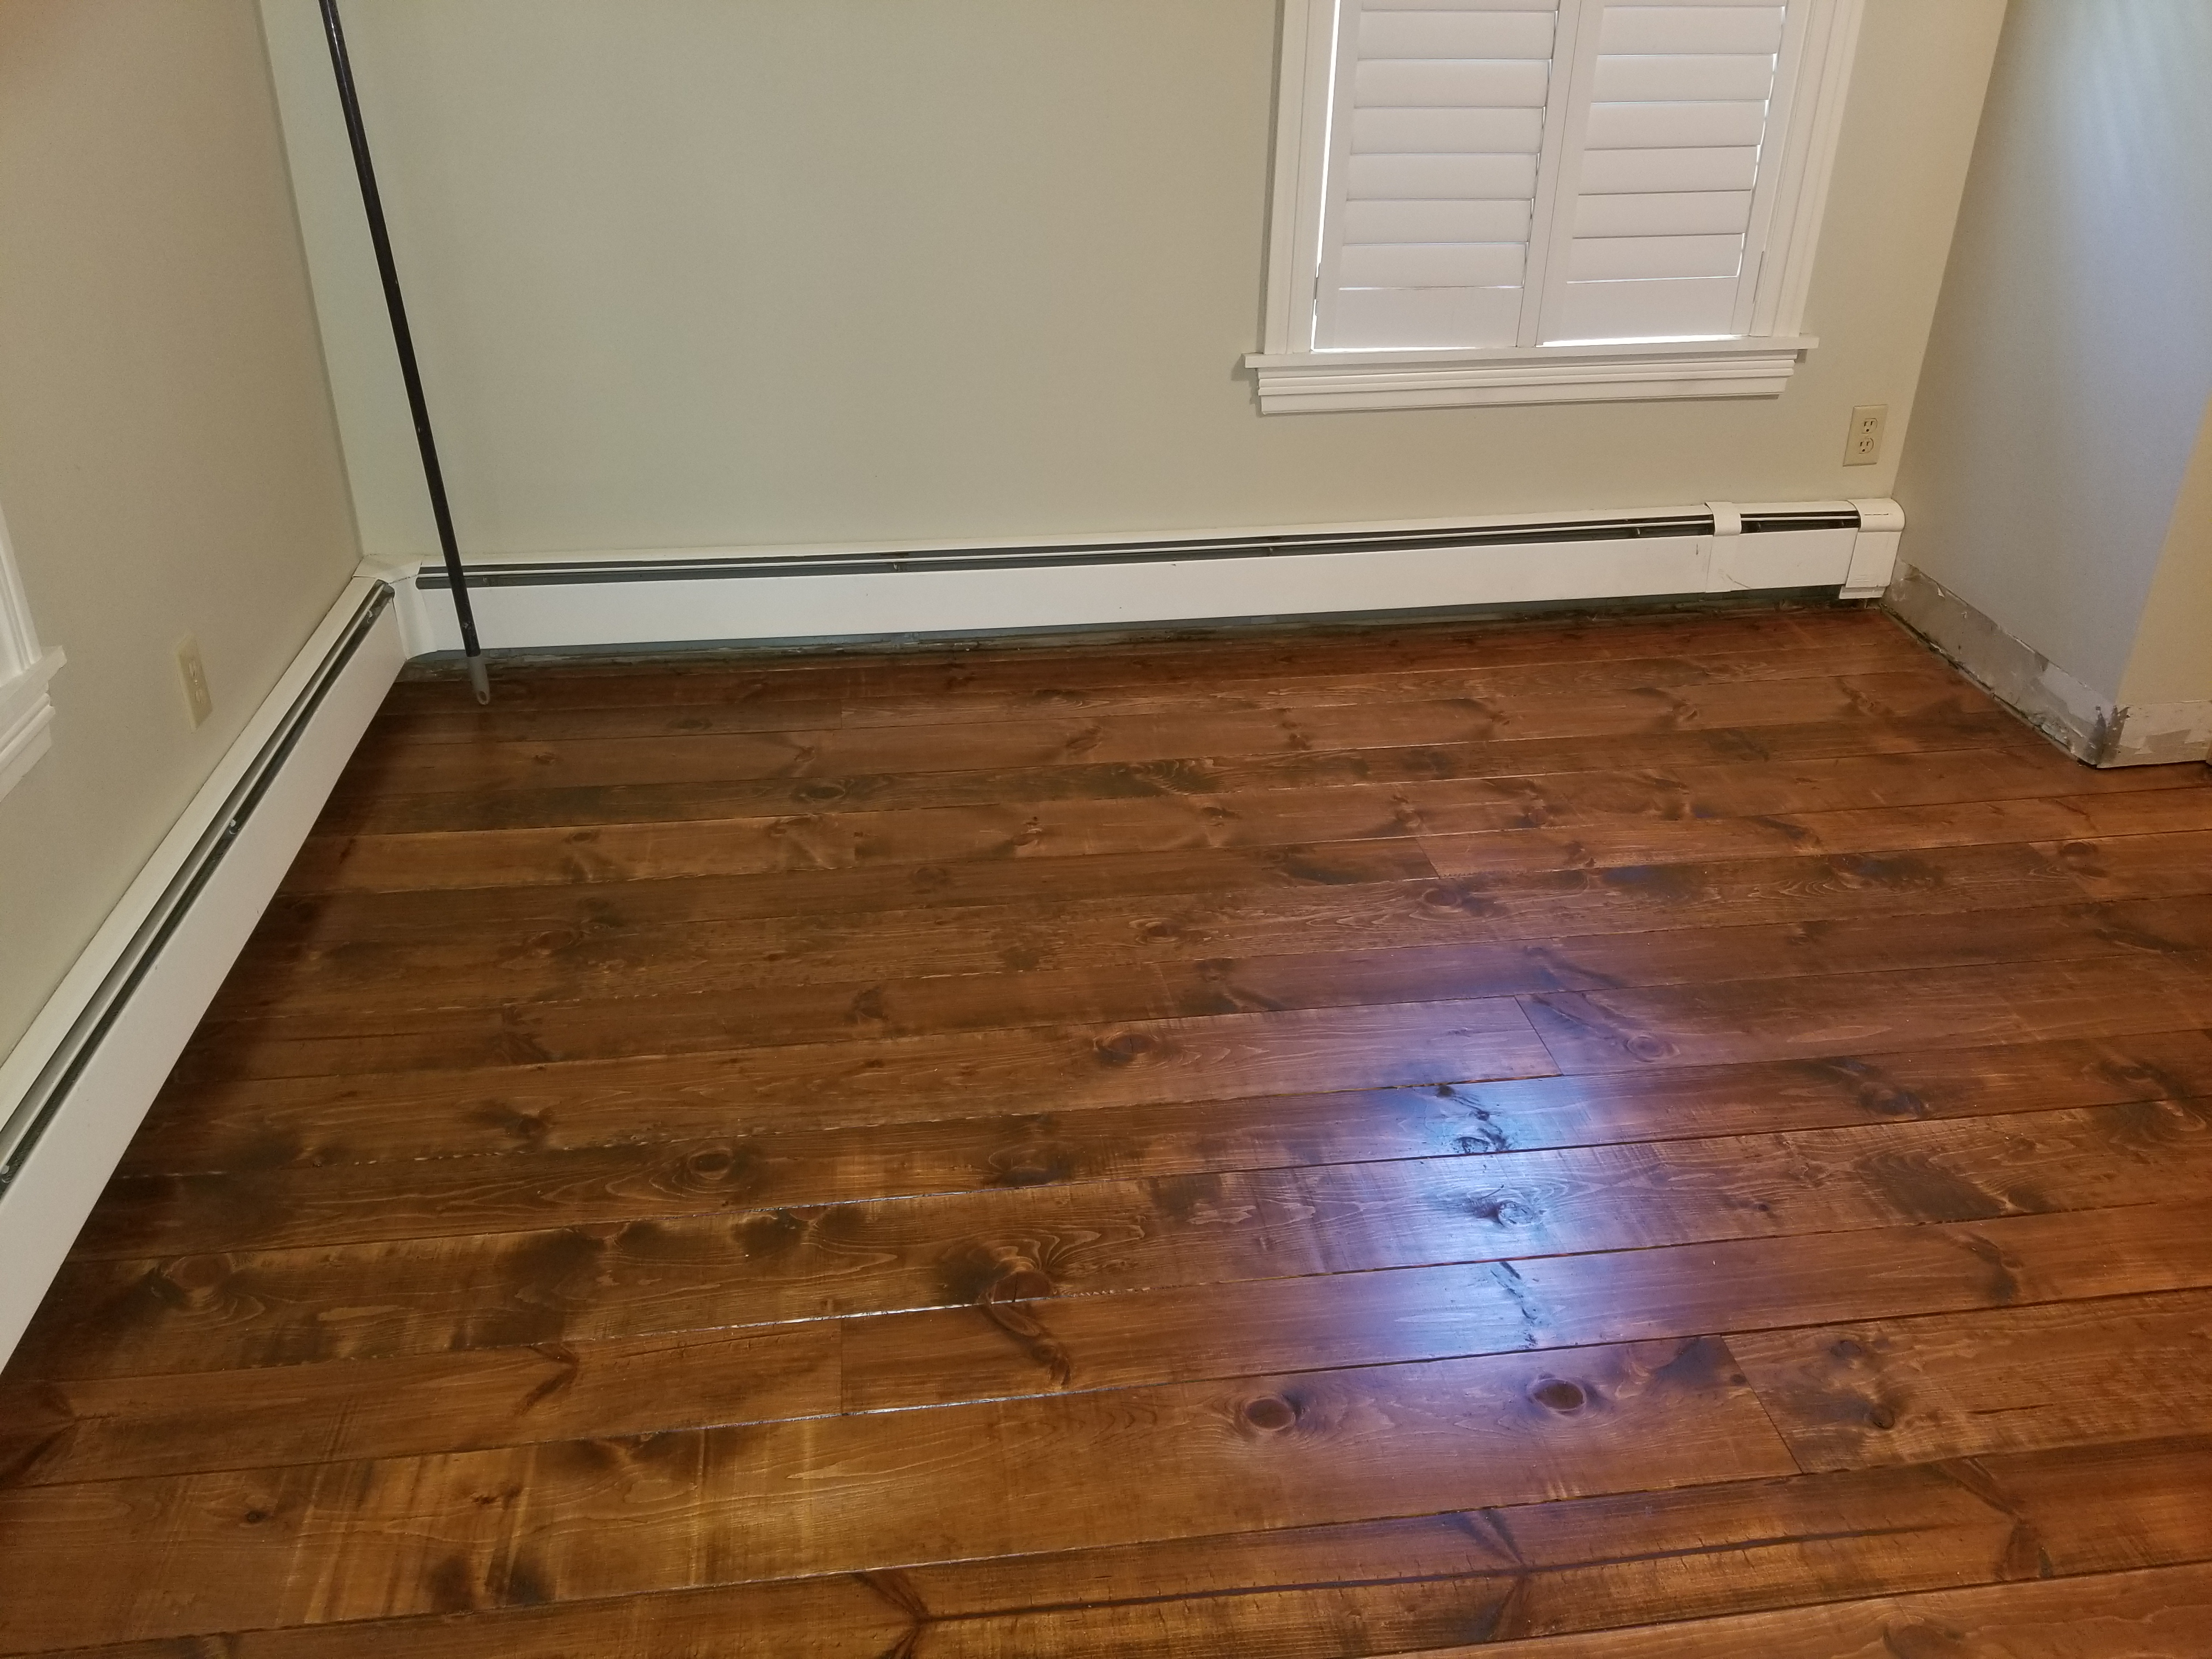 Flooring repair & Solid Pine Wood Install Custom Stain Match